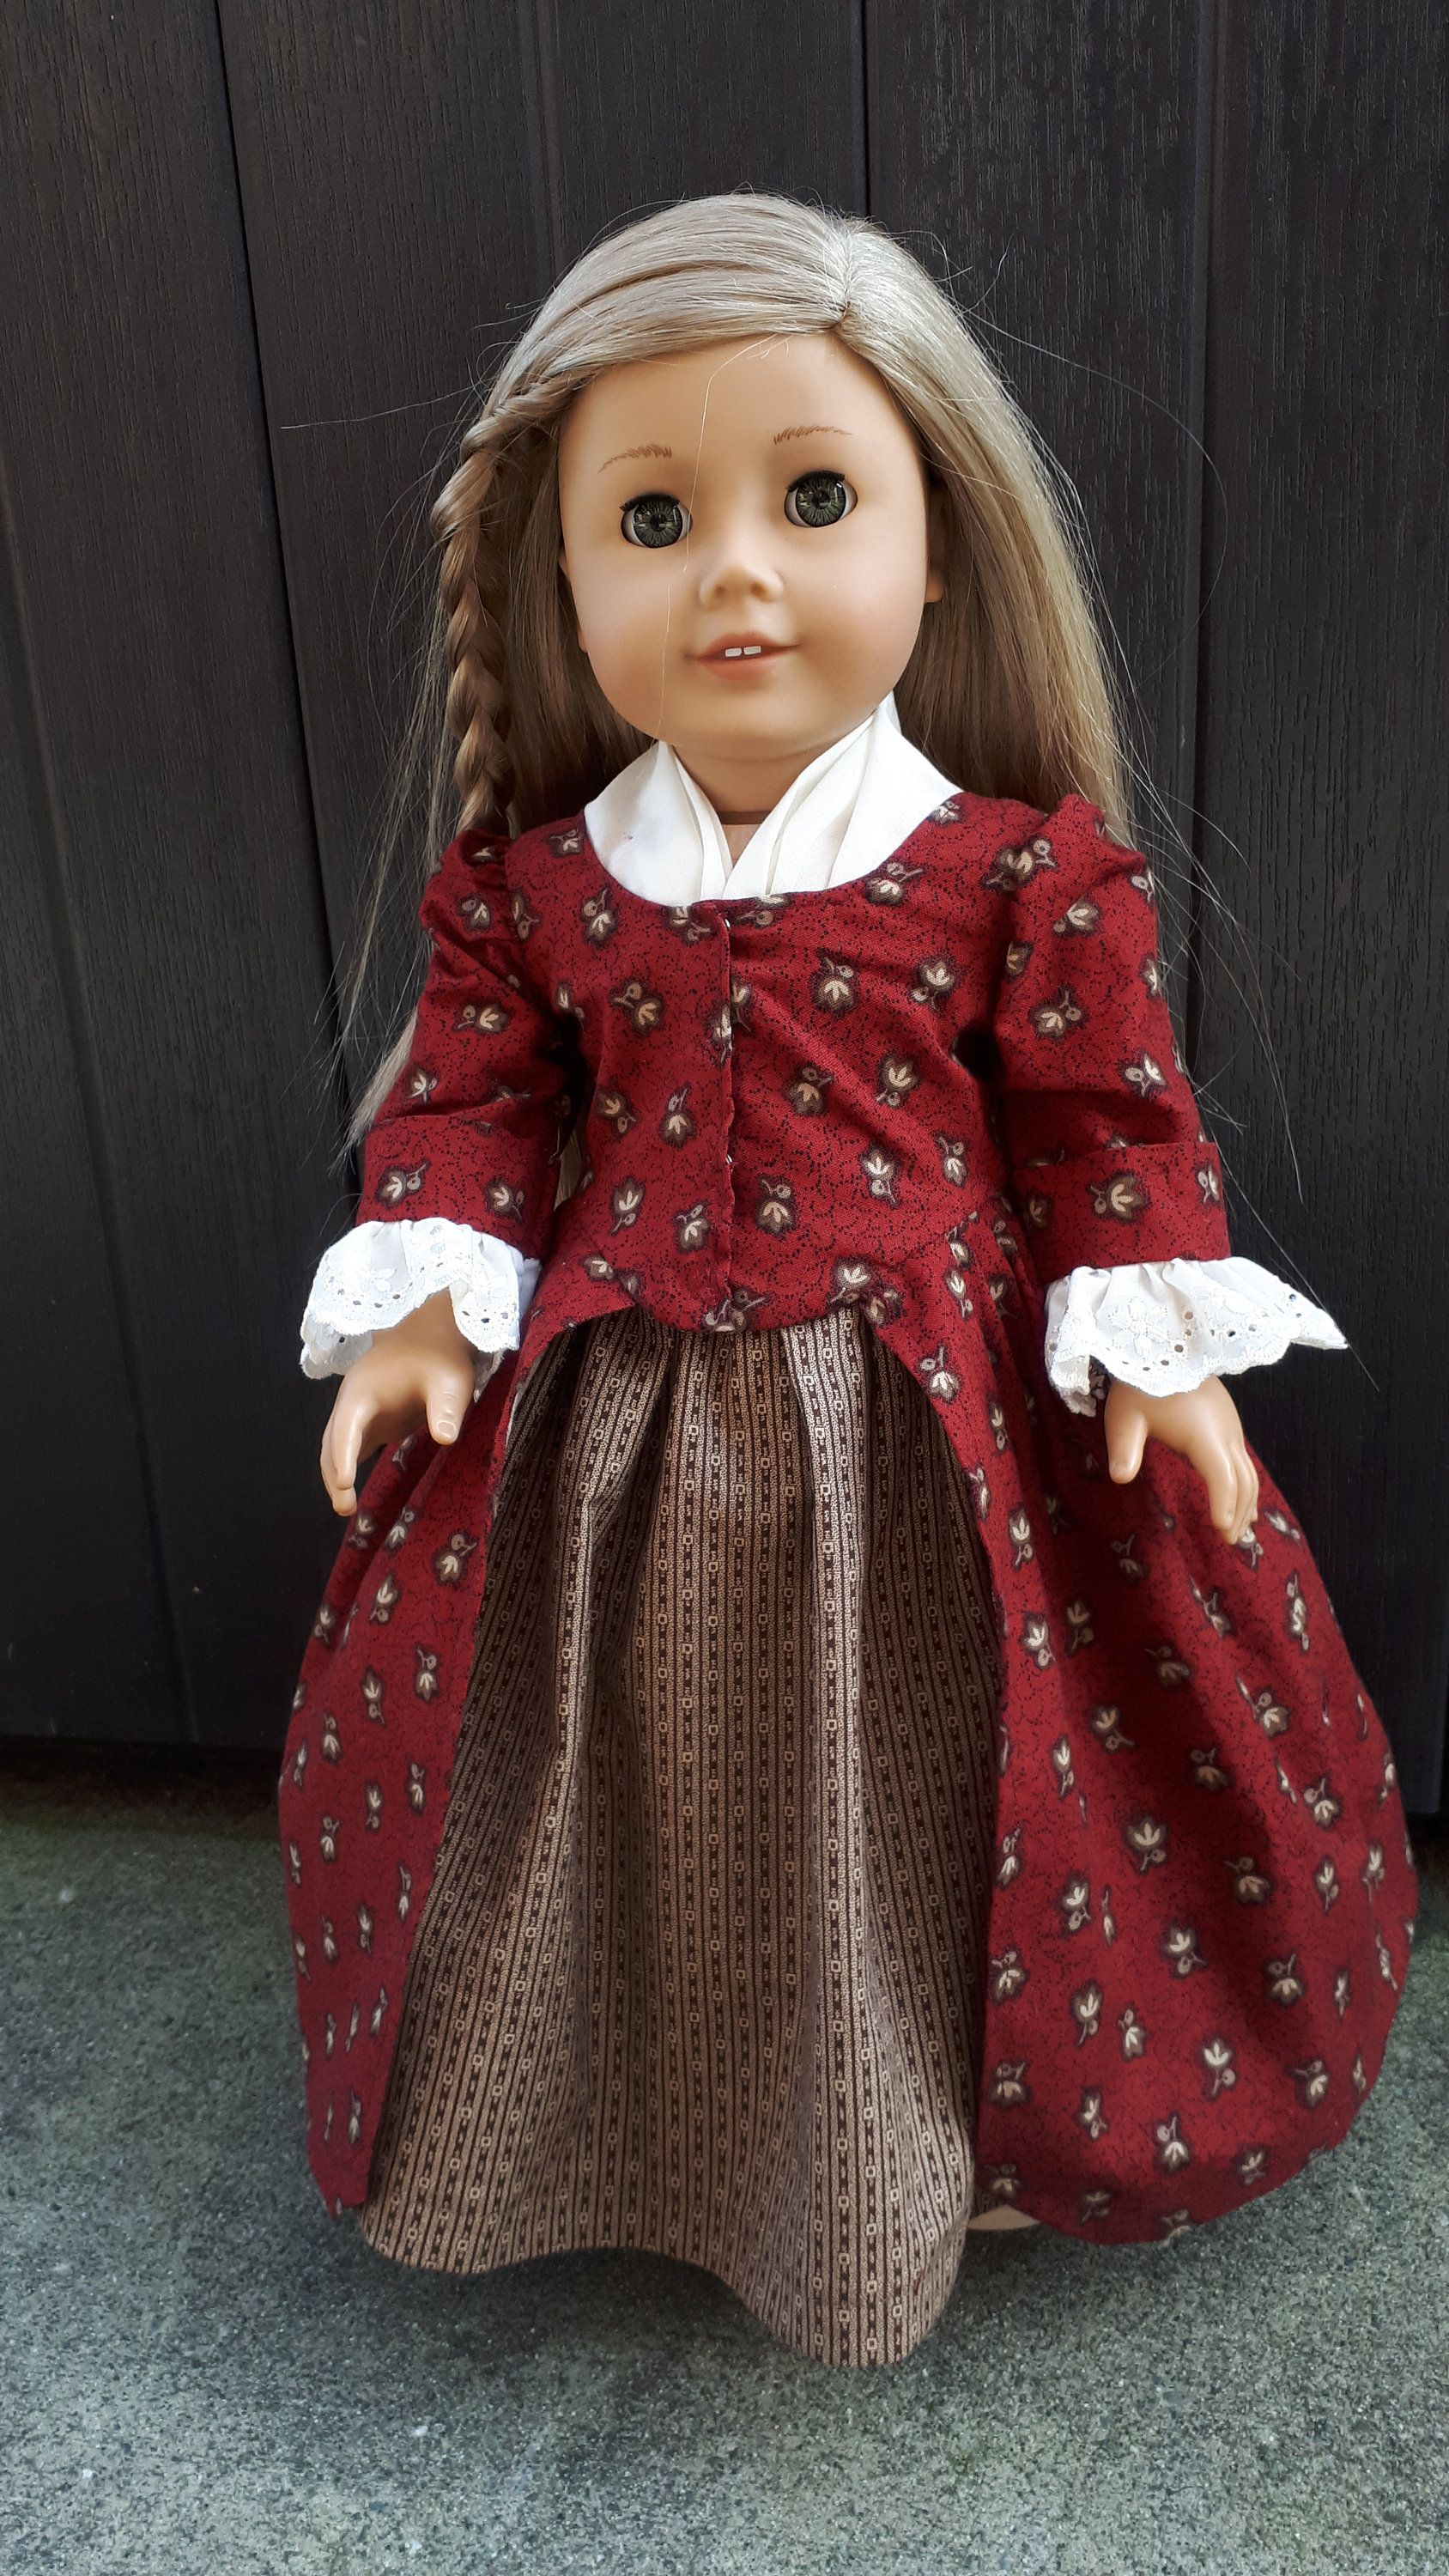 18 doll clothes - 17720s En Forreau Gownin burgundy and brown to fit American Girl Dolls and other similar sized dolls by Grandmasadiescloset on Etsy #historicaldollclothes